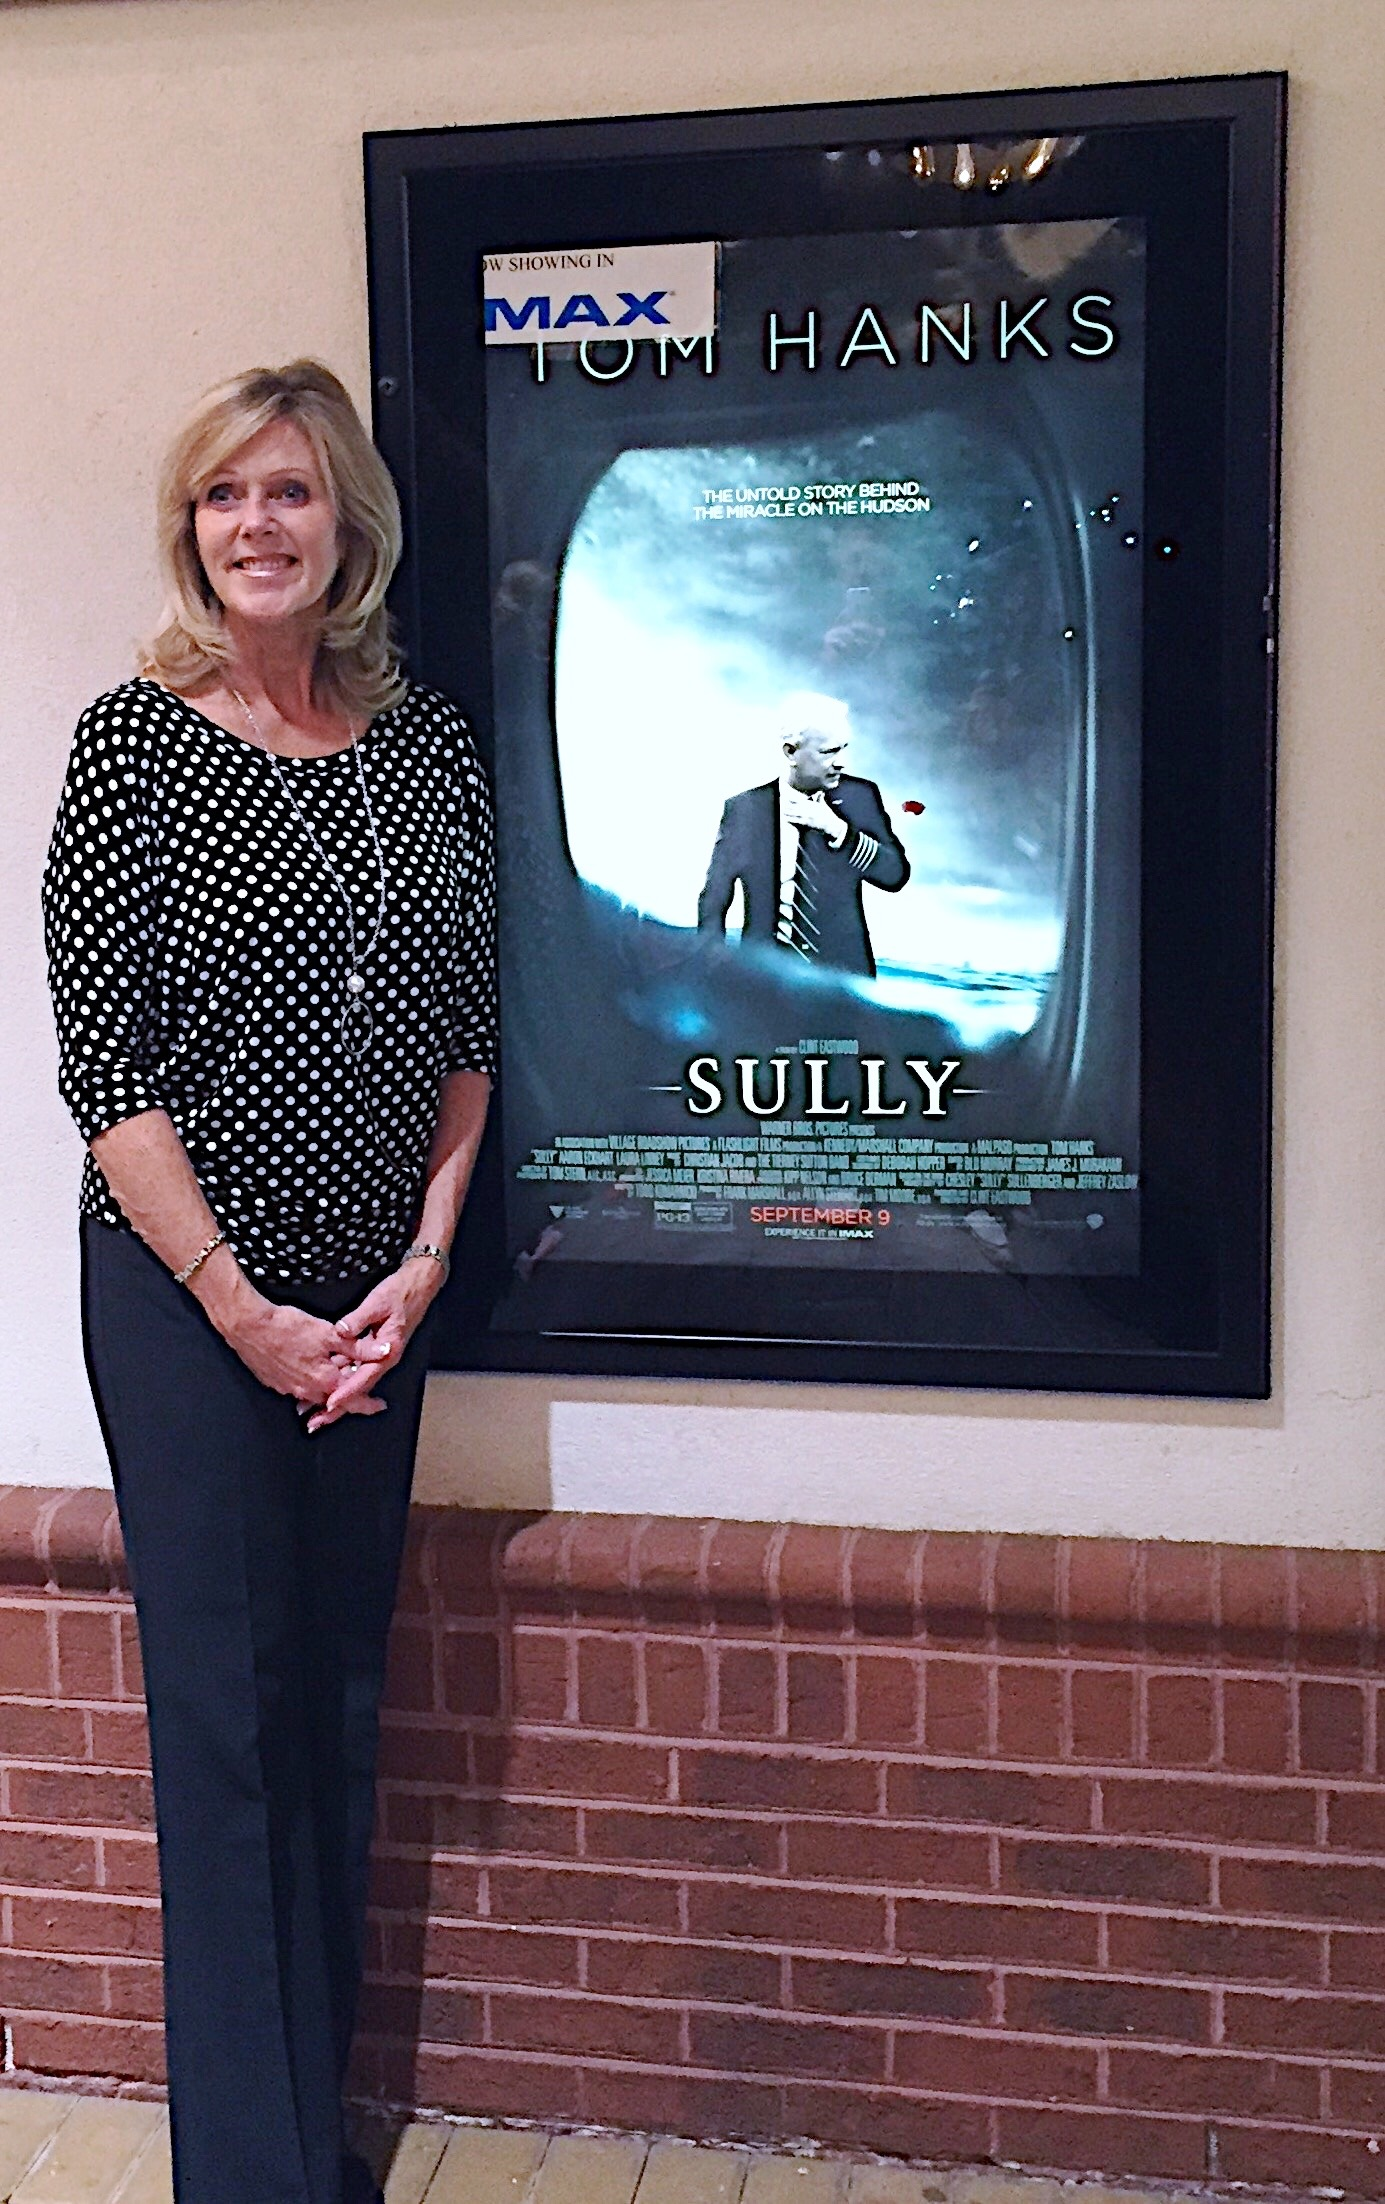 Lori in front of the movie poster